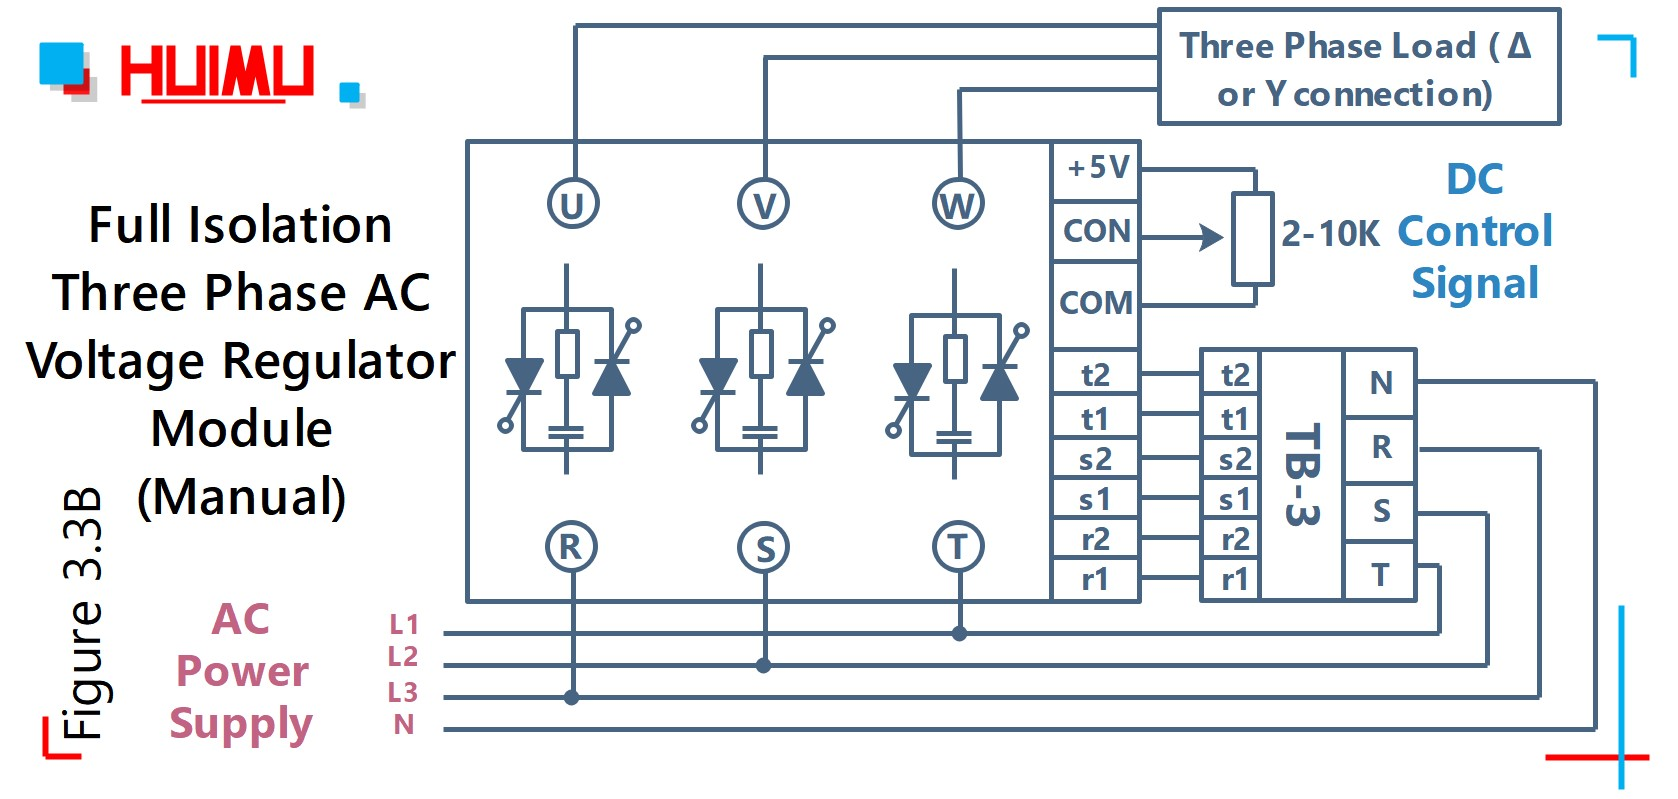 how to wire mgr mager mgr-sty380d40e (manual control signal) full isolation  three